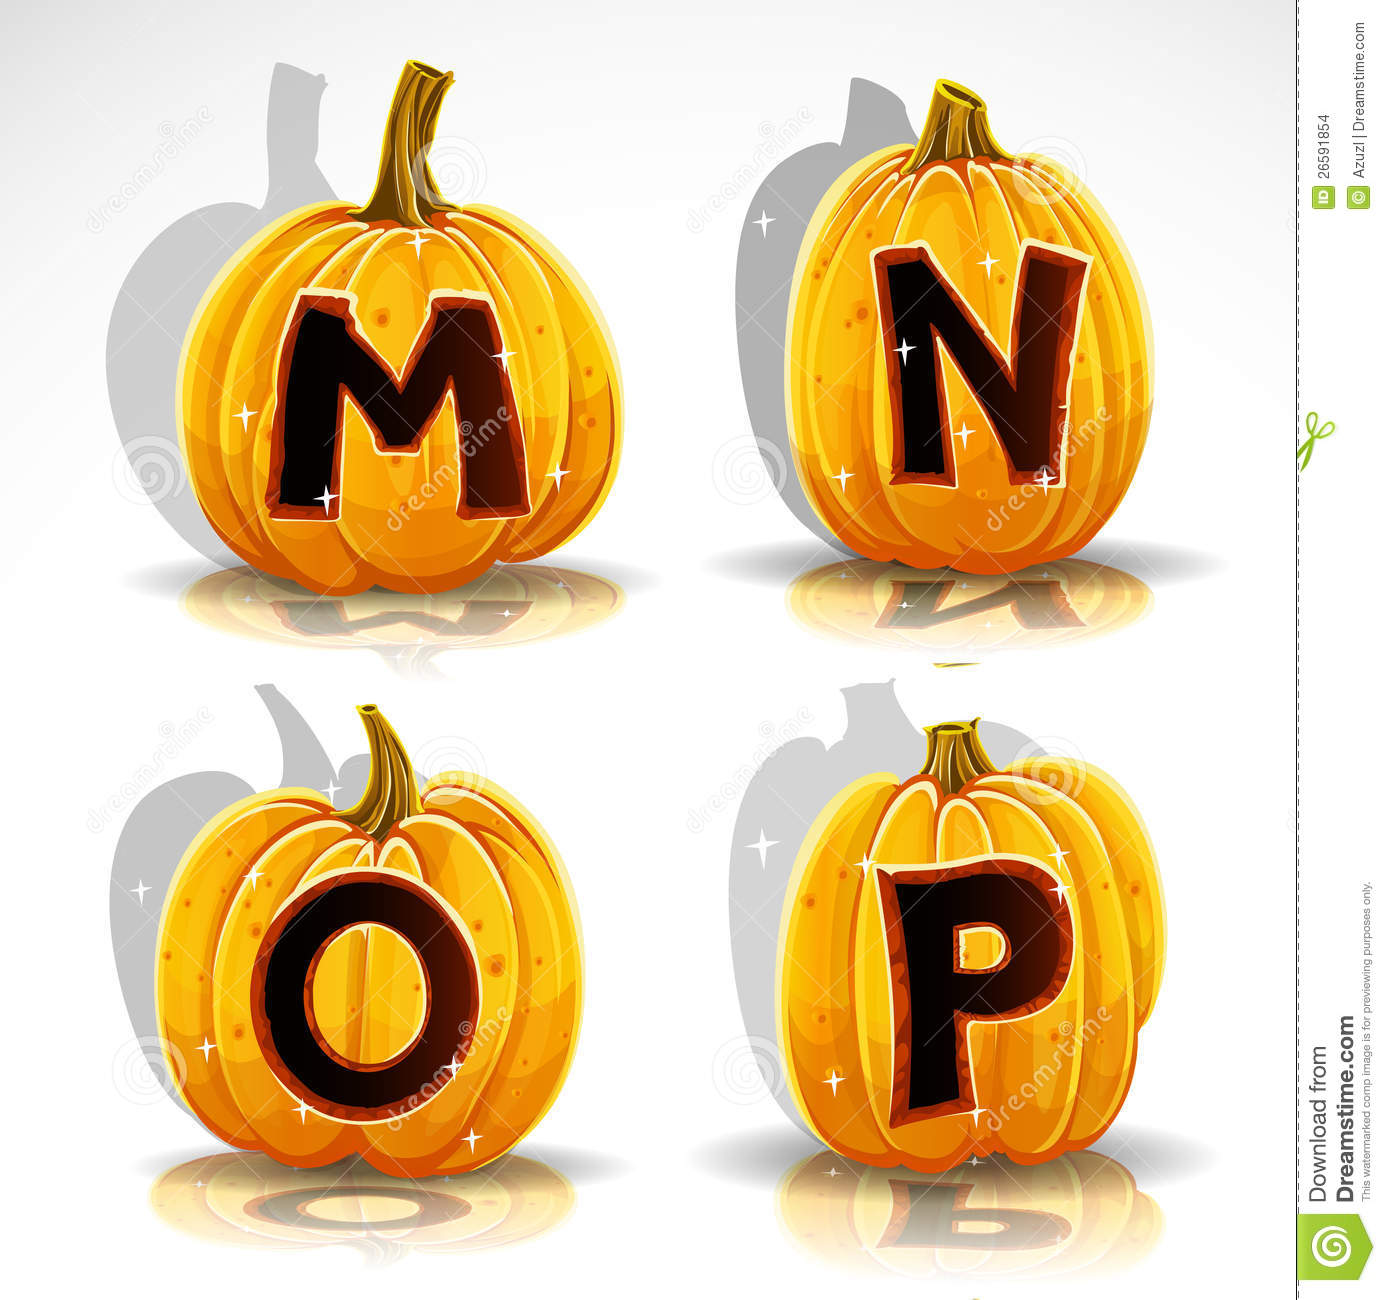 11 Cool Halloween Fonts Images Scary Halloween Fonts